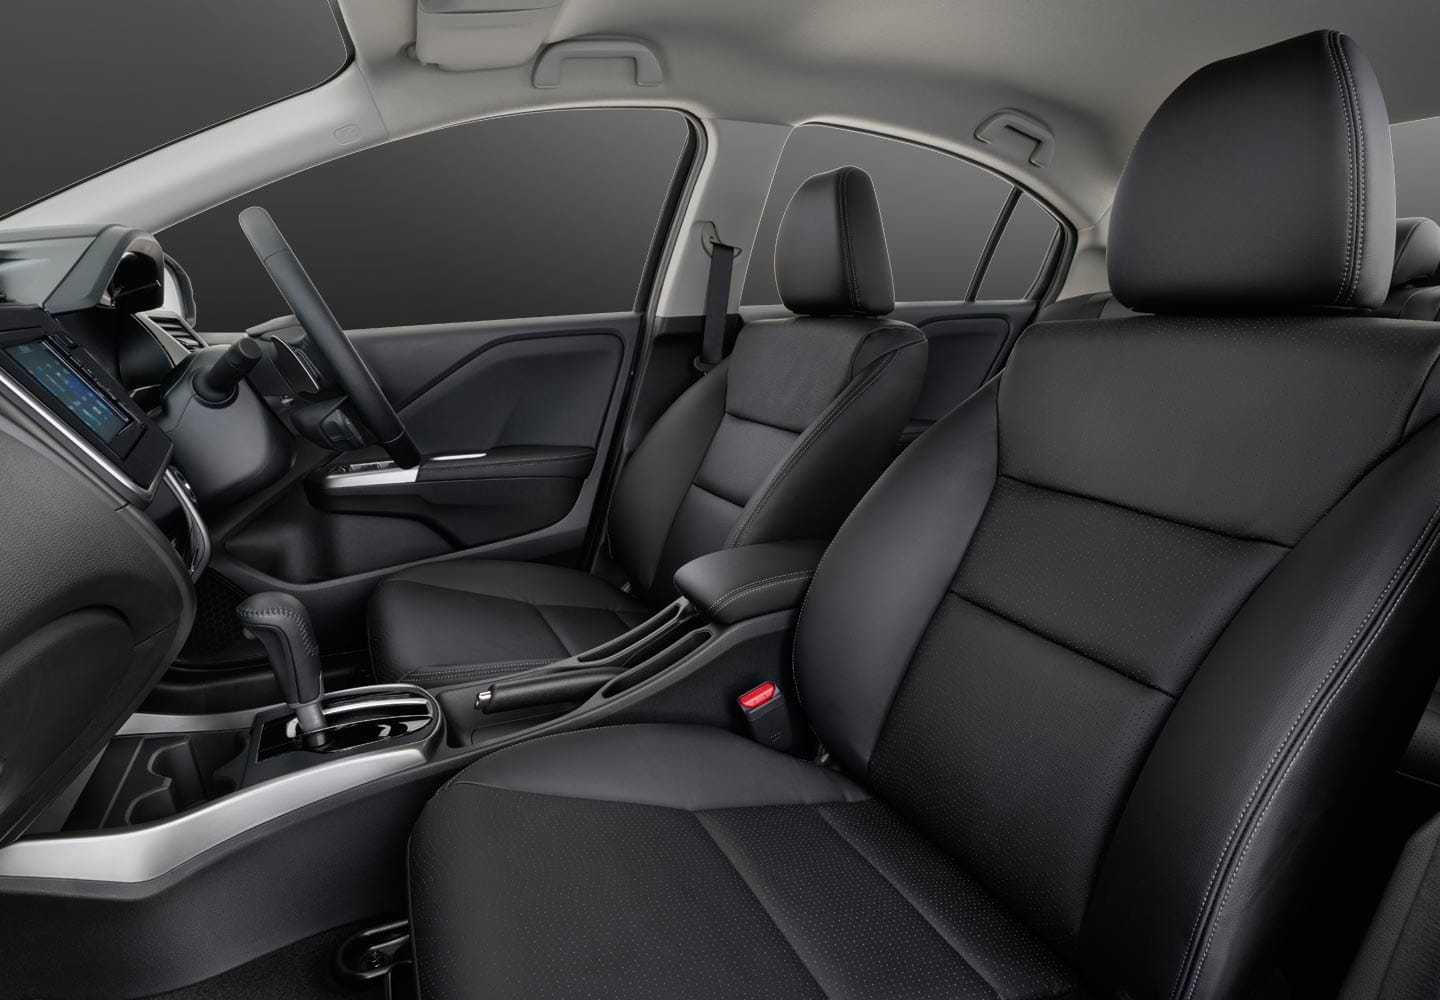 AUTOMATIC TENSIONING SEATBELTS